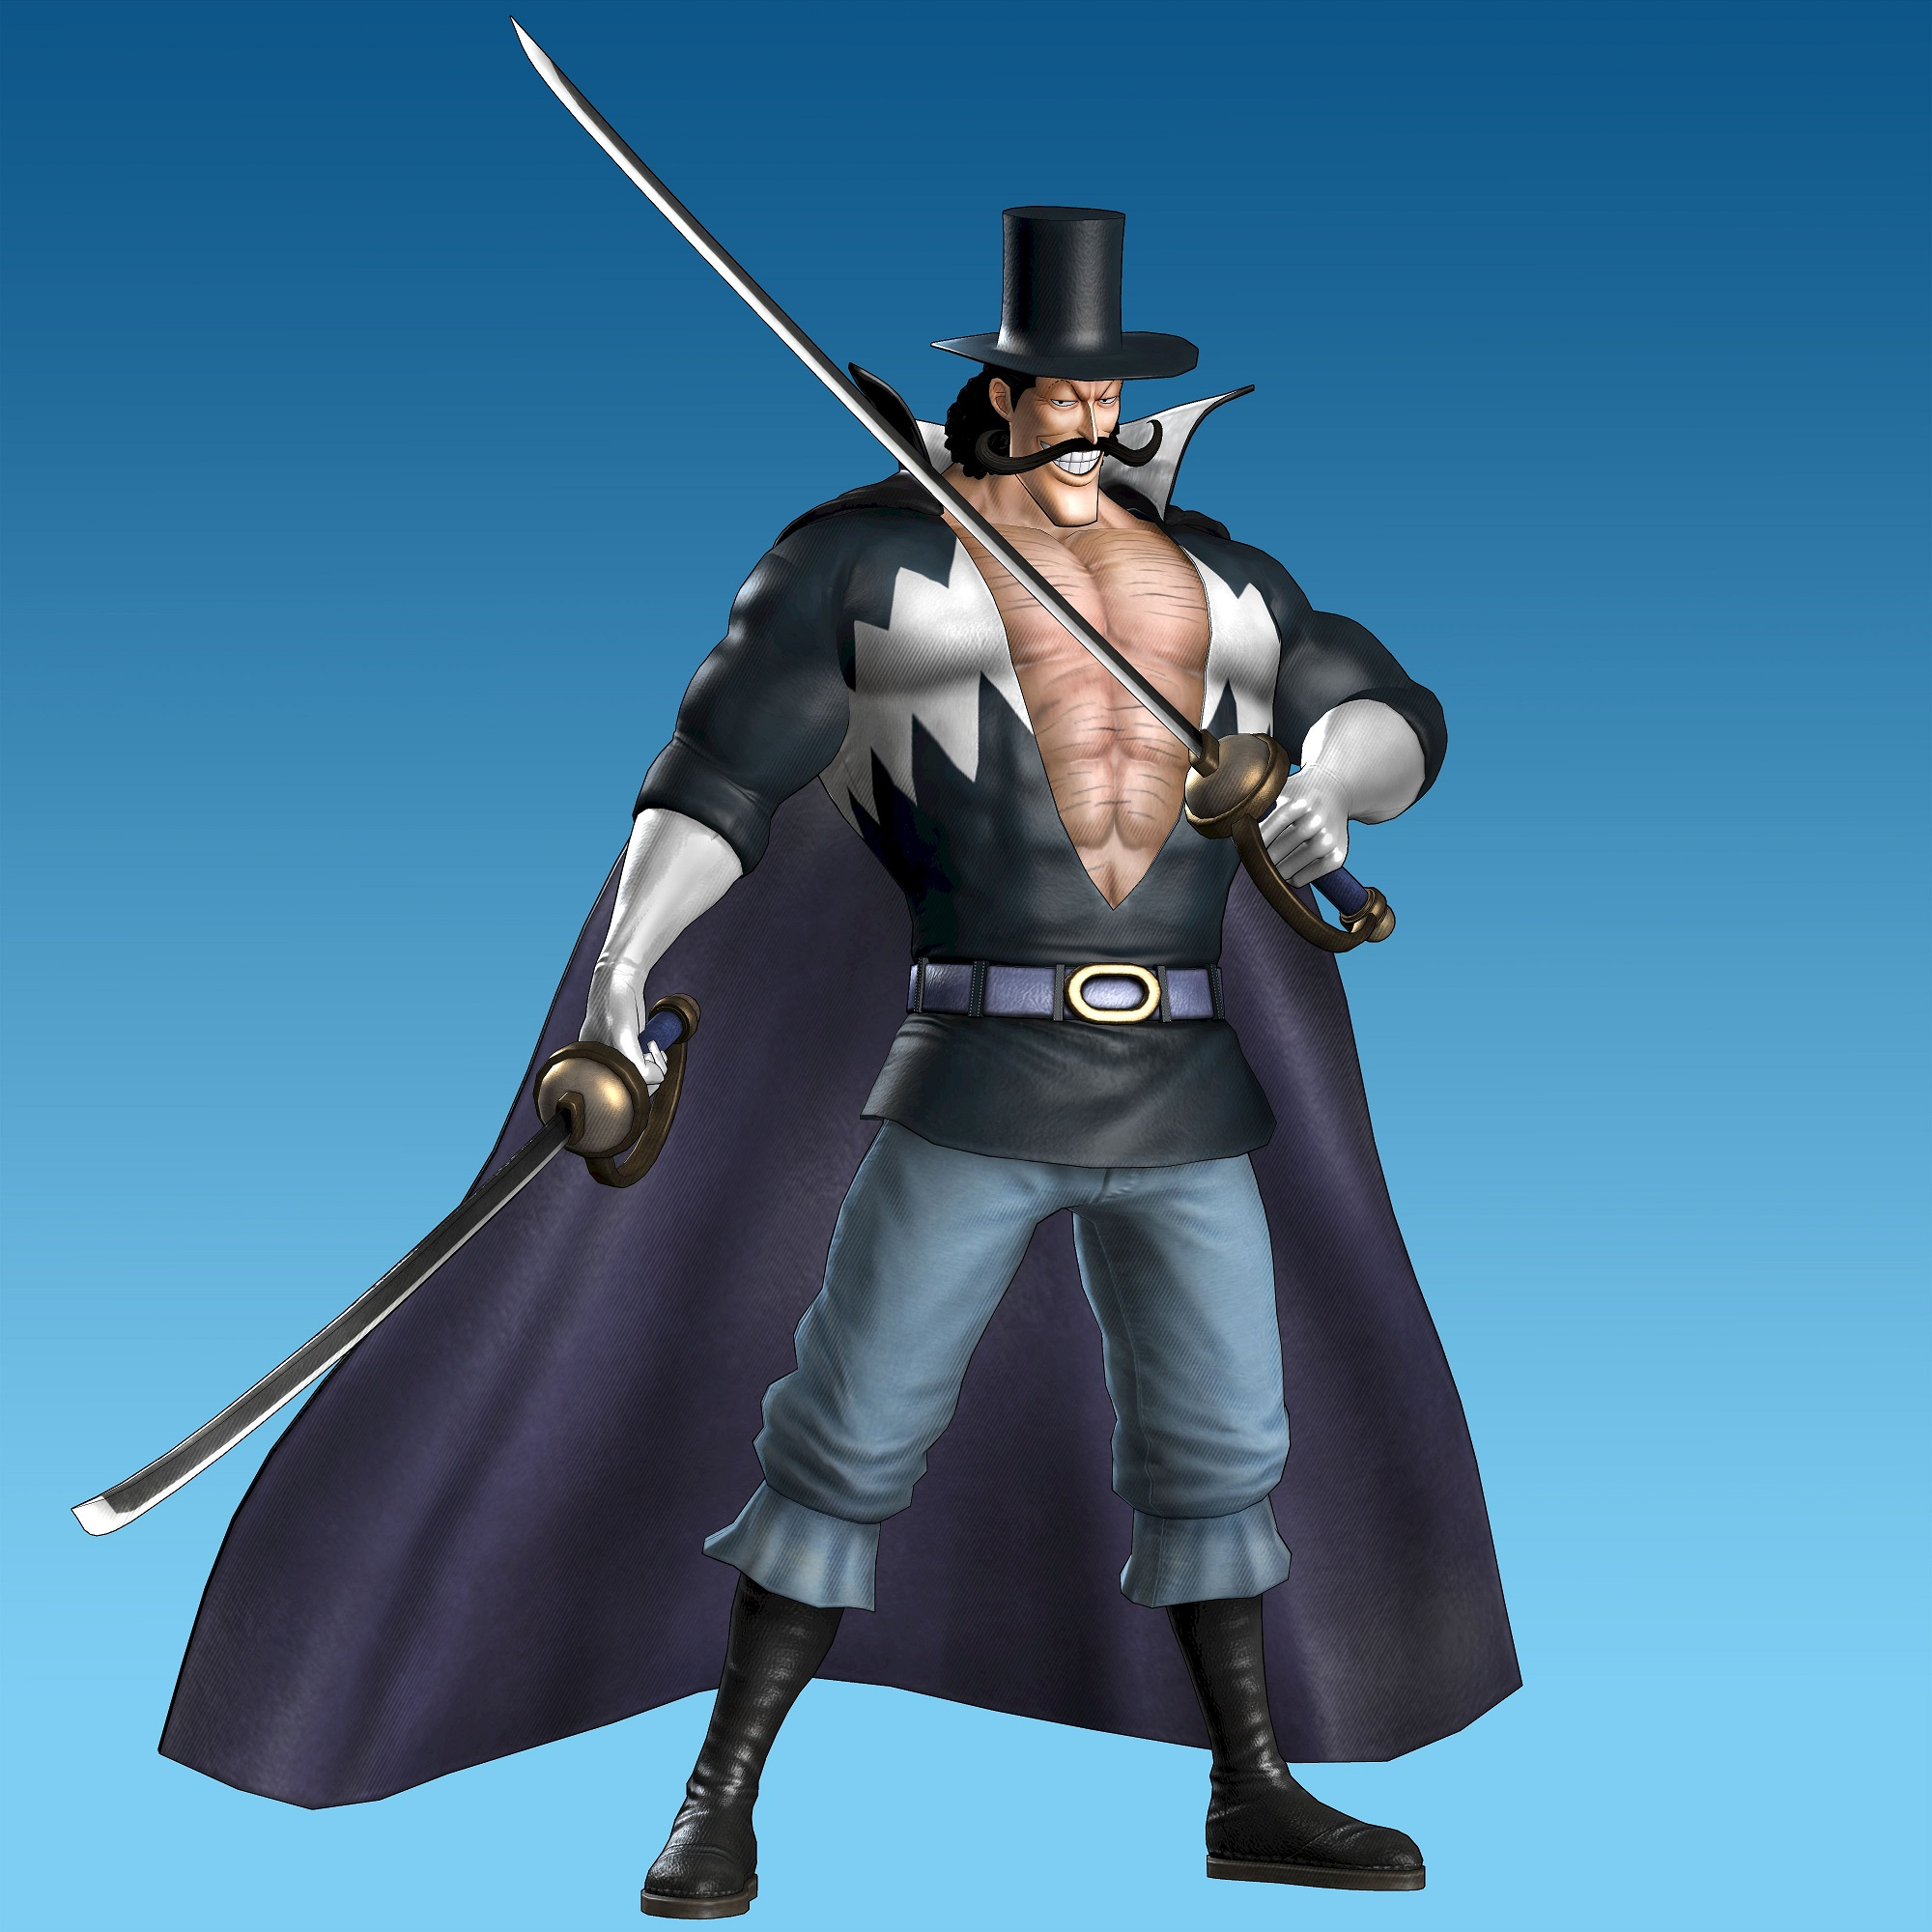 One Piece: Pirate Warriors 2 Screens Show Off Ace, Buggy